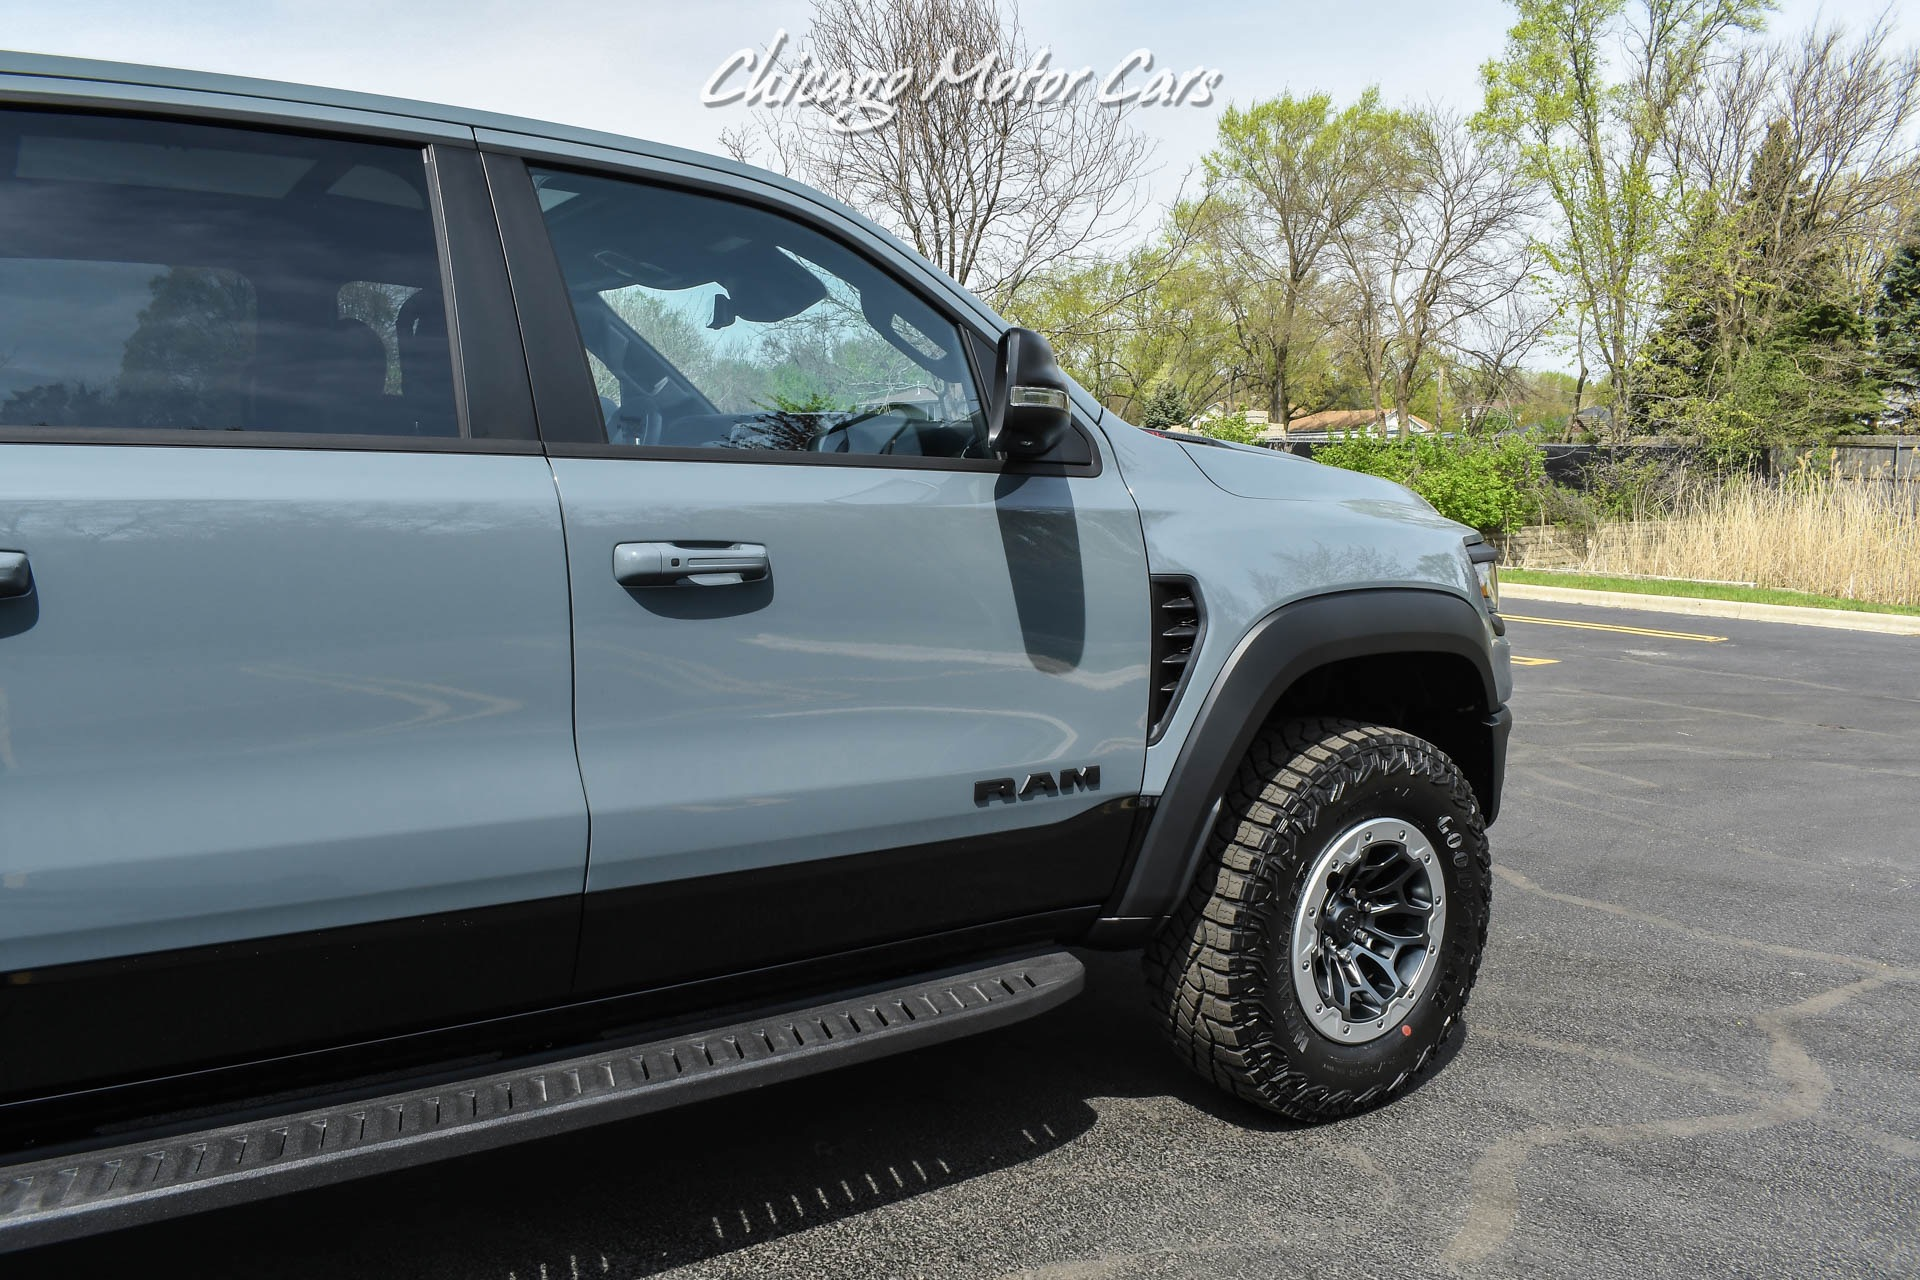 Used-2021-Ram-1500-TRX-LAUNCH-EDITION-TRX-Level-2-Group-ONLY-380-Miles-LOADED